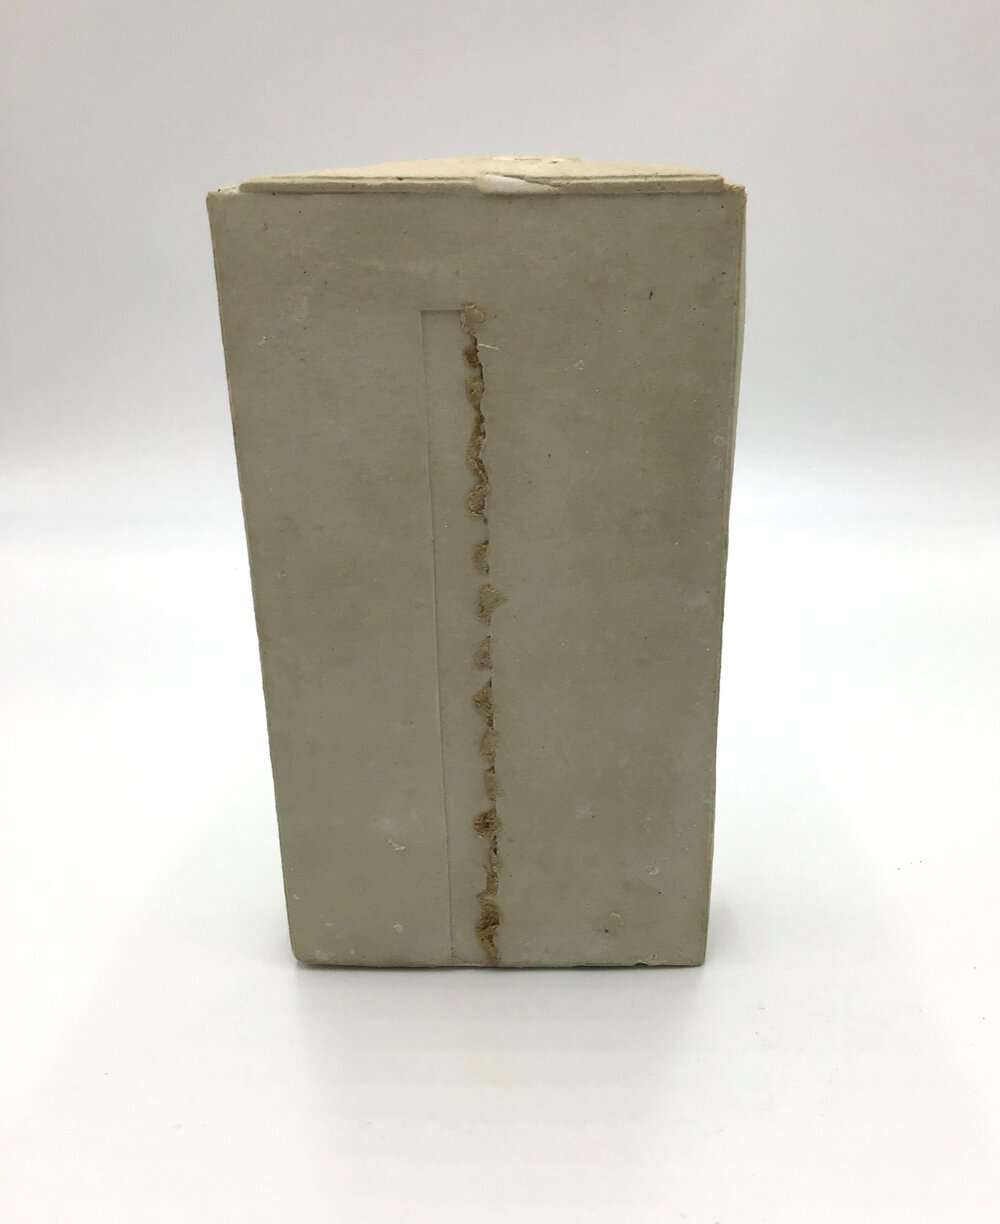 "Center Cut,  plaster and cardboard 8.5"" high X 5"" long X 2"" wide (2019)"